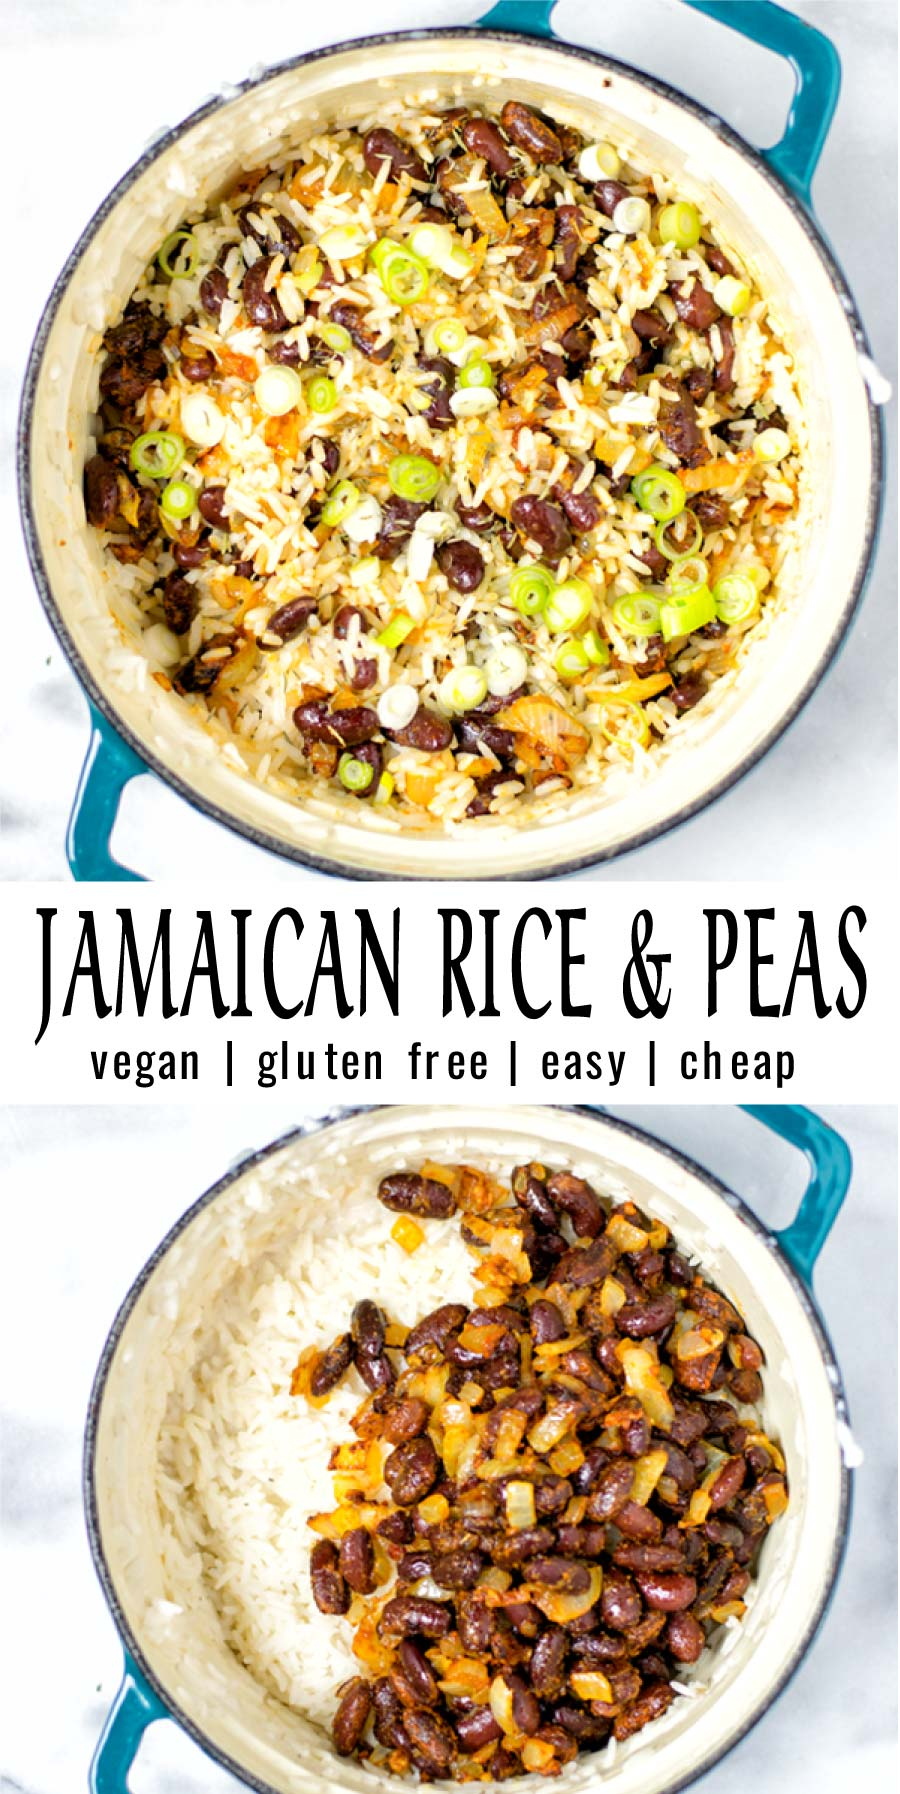 Easy and satisfying: these Jamaican Rice and Peas are easy to make and budget friendly. Naturally vegan, a keeper that everyone will count on not only for lunch, dinner also great for meal prep. #vegan #dairyfree #glutenfree #vegetarian #contentednesscooking #dinner #lunch #jamaicanriceandpeas #30minutemeals #mealprep